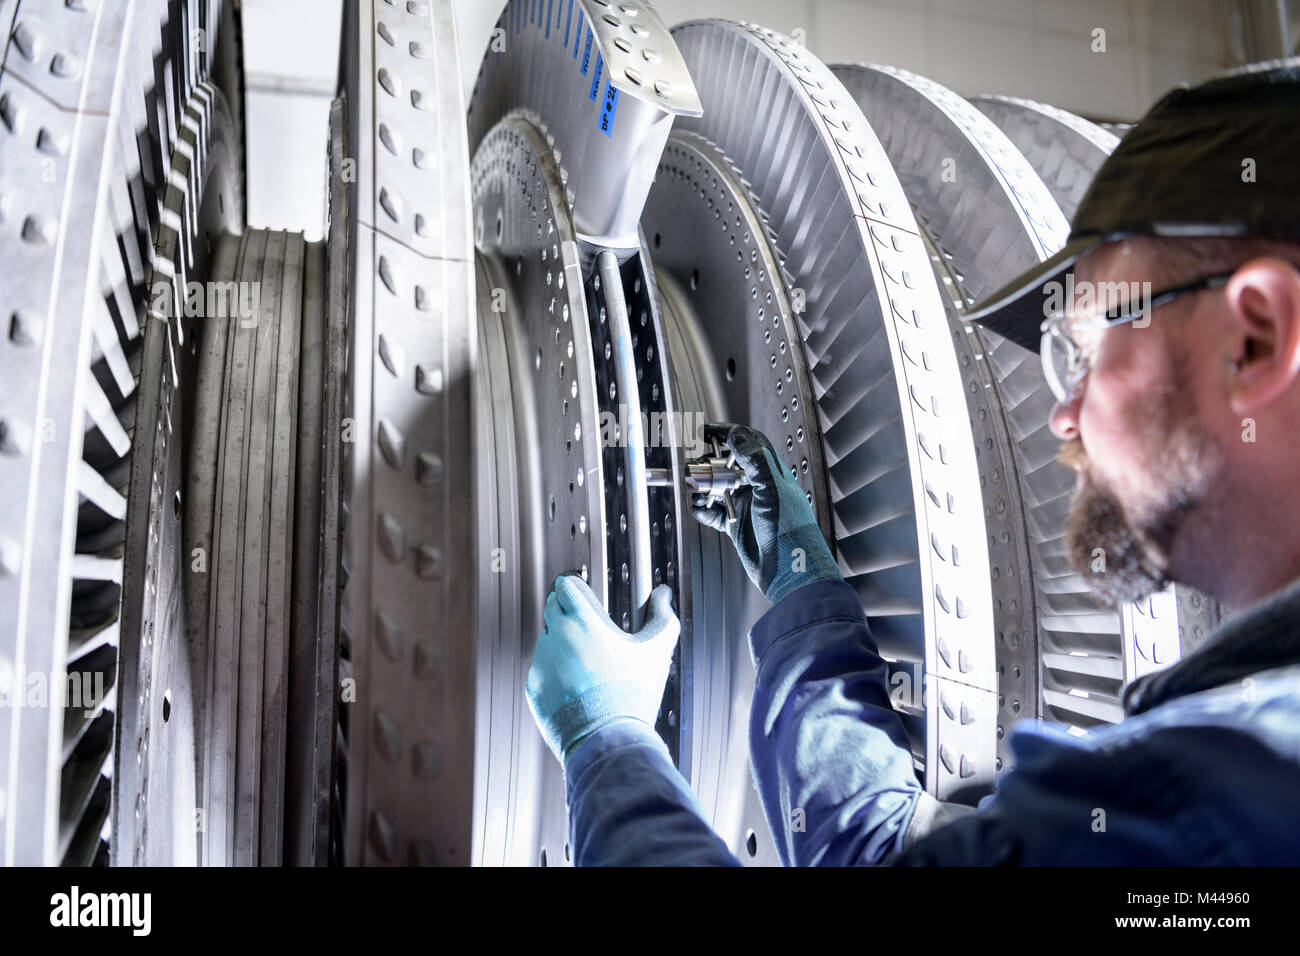 Close up of engineer working on high pressure steam turbine in turbine maintenance factory - Stock Image